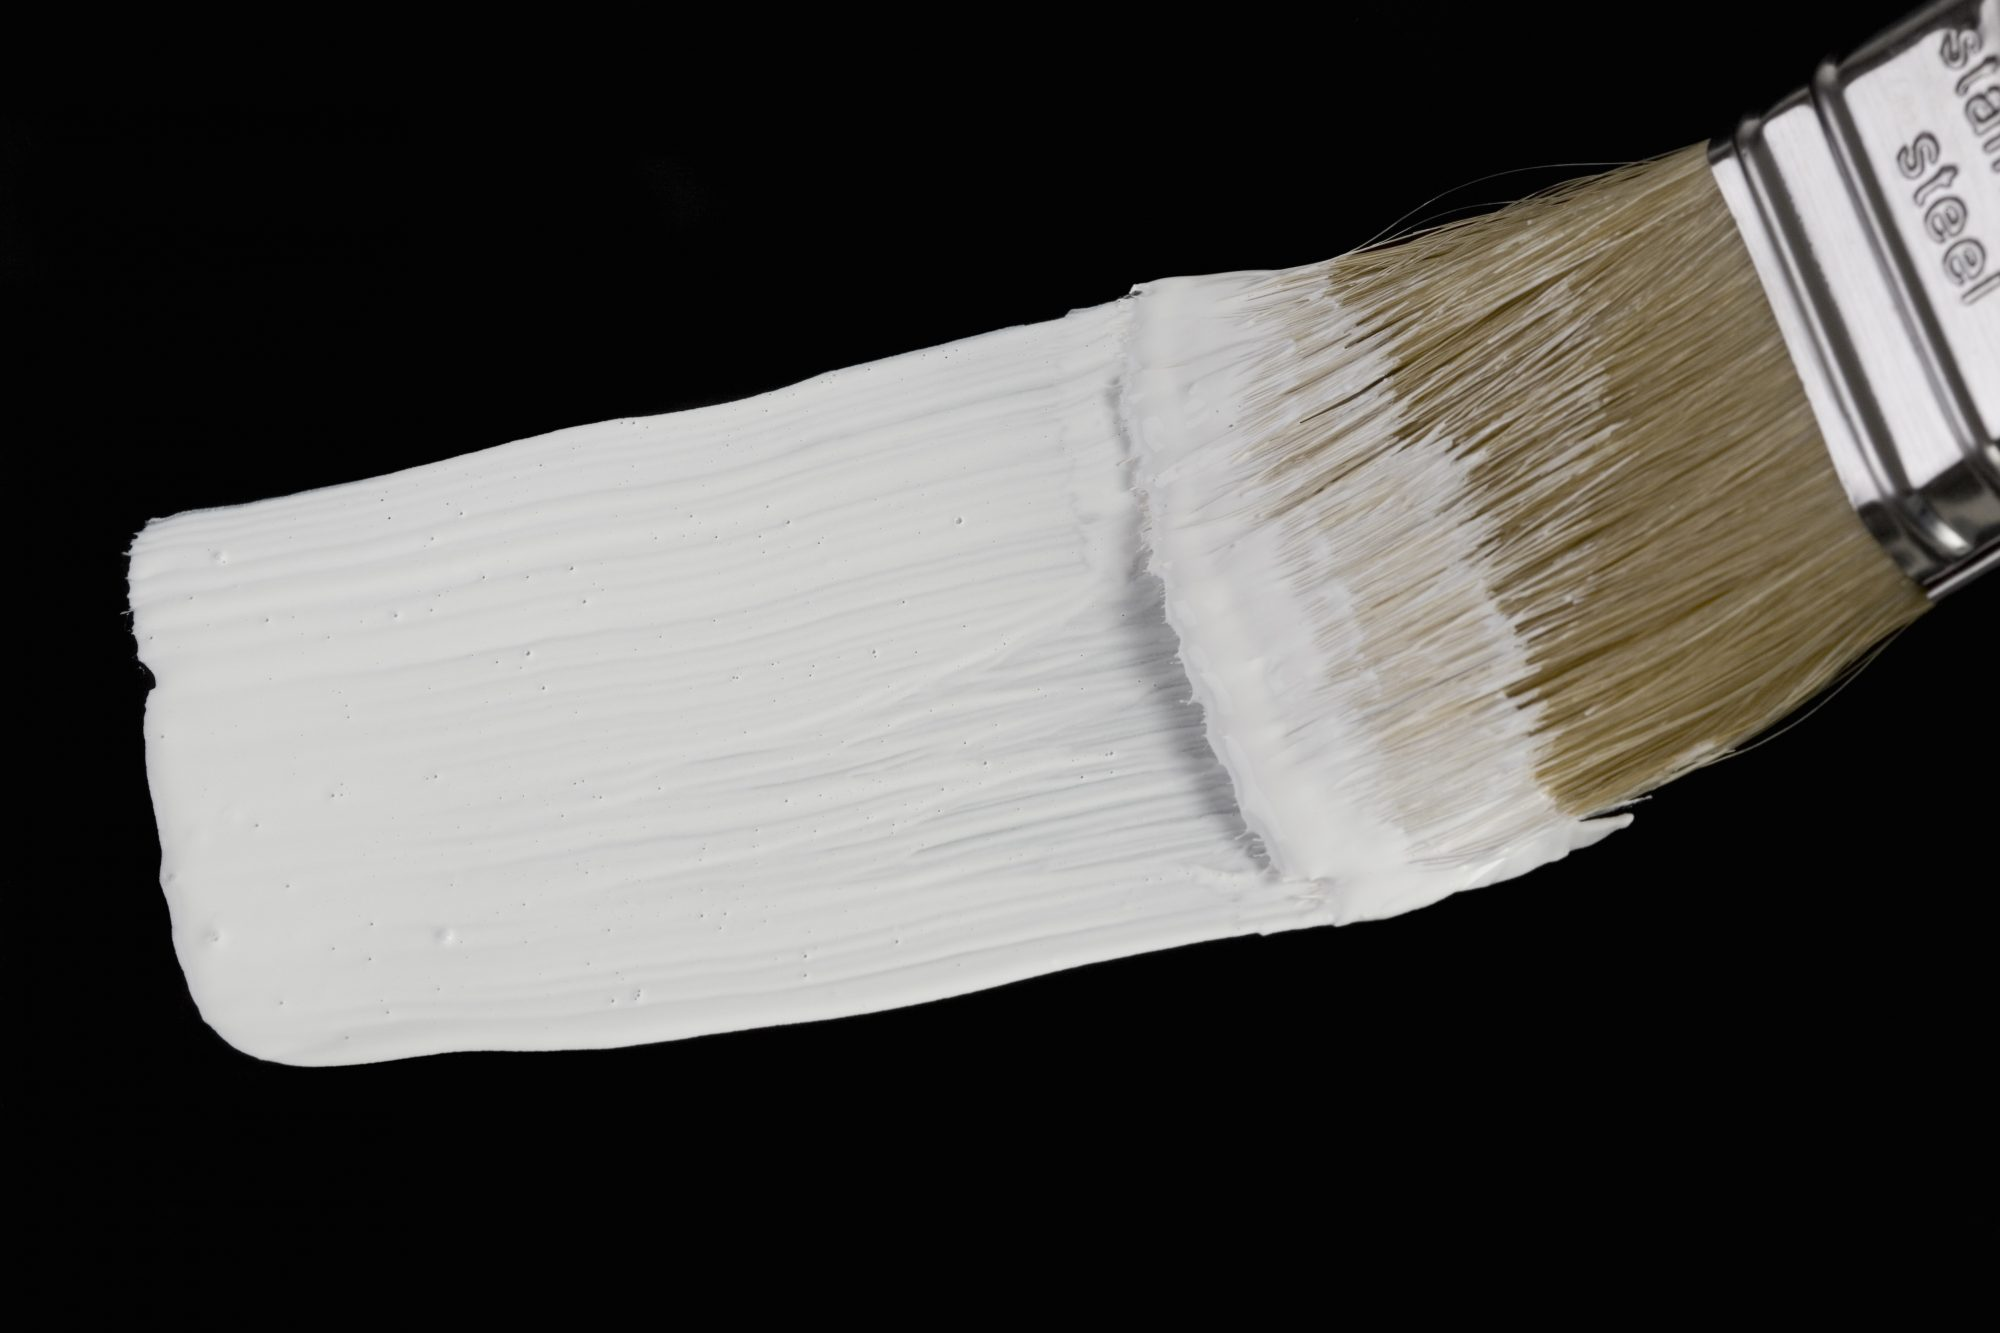 A paintbrush painting a white stripe